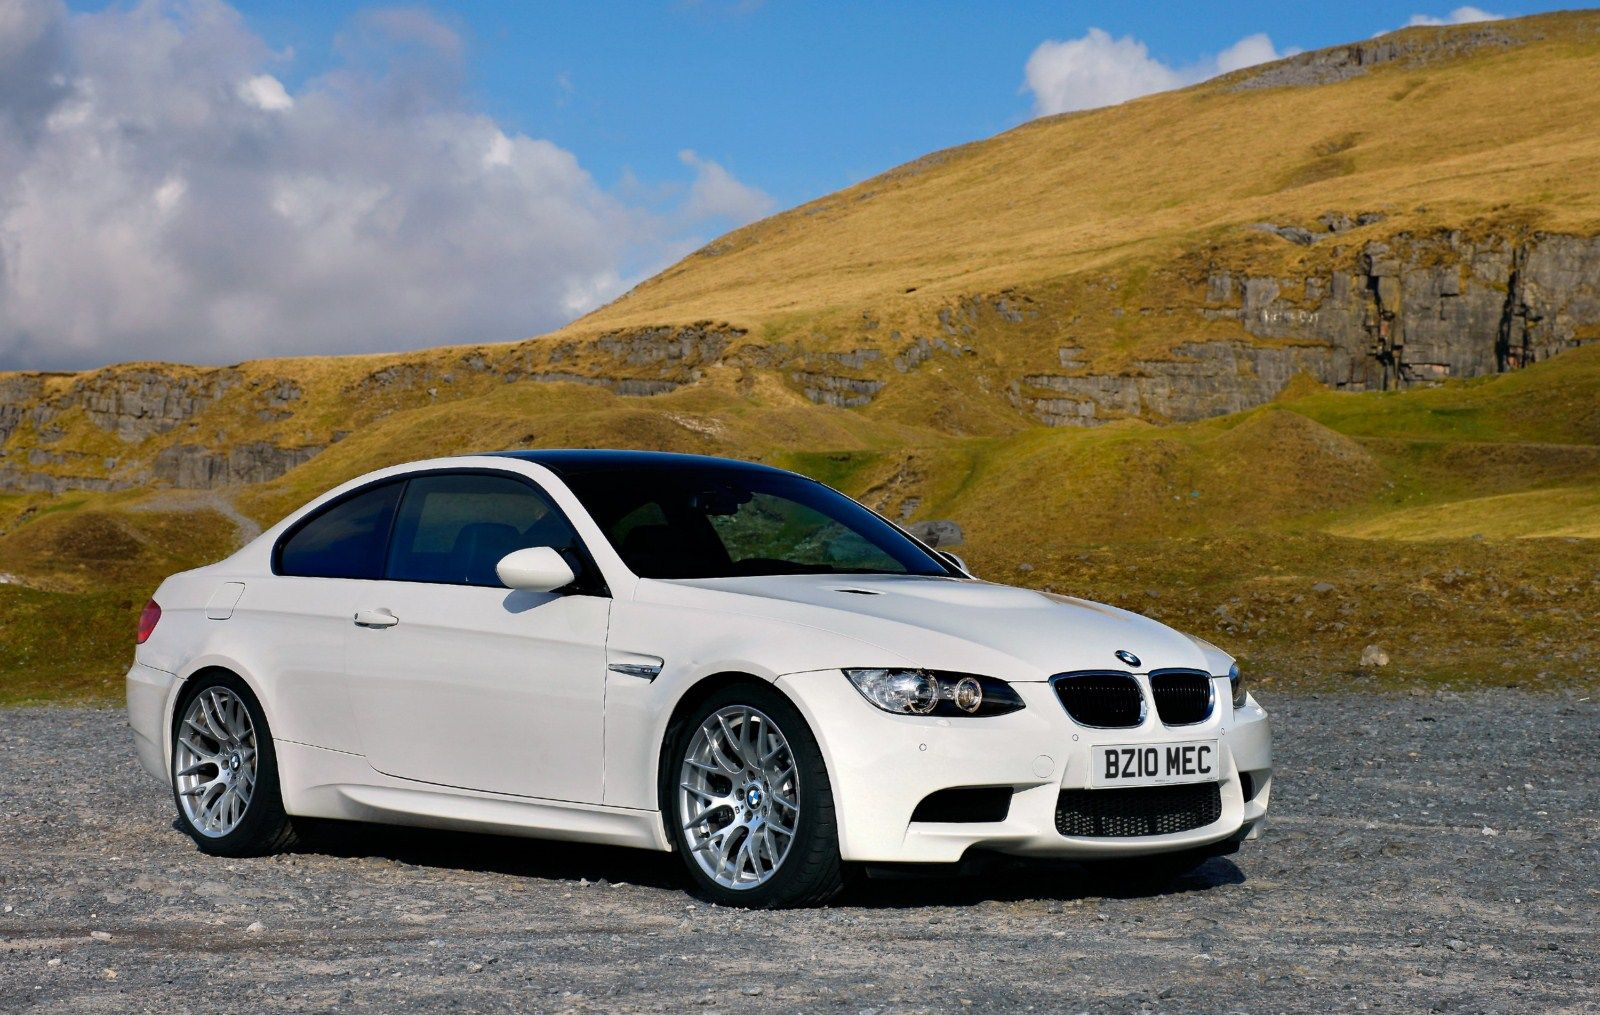 BMW M3 e92 | Images of the cars | Pinterest | BMW M3, BMW and Cars